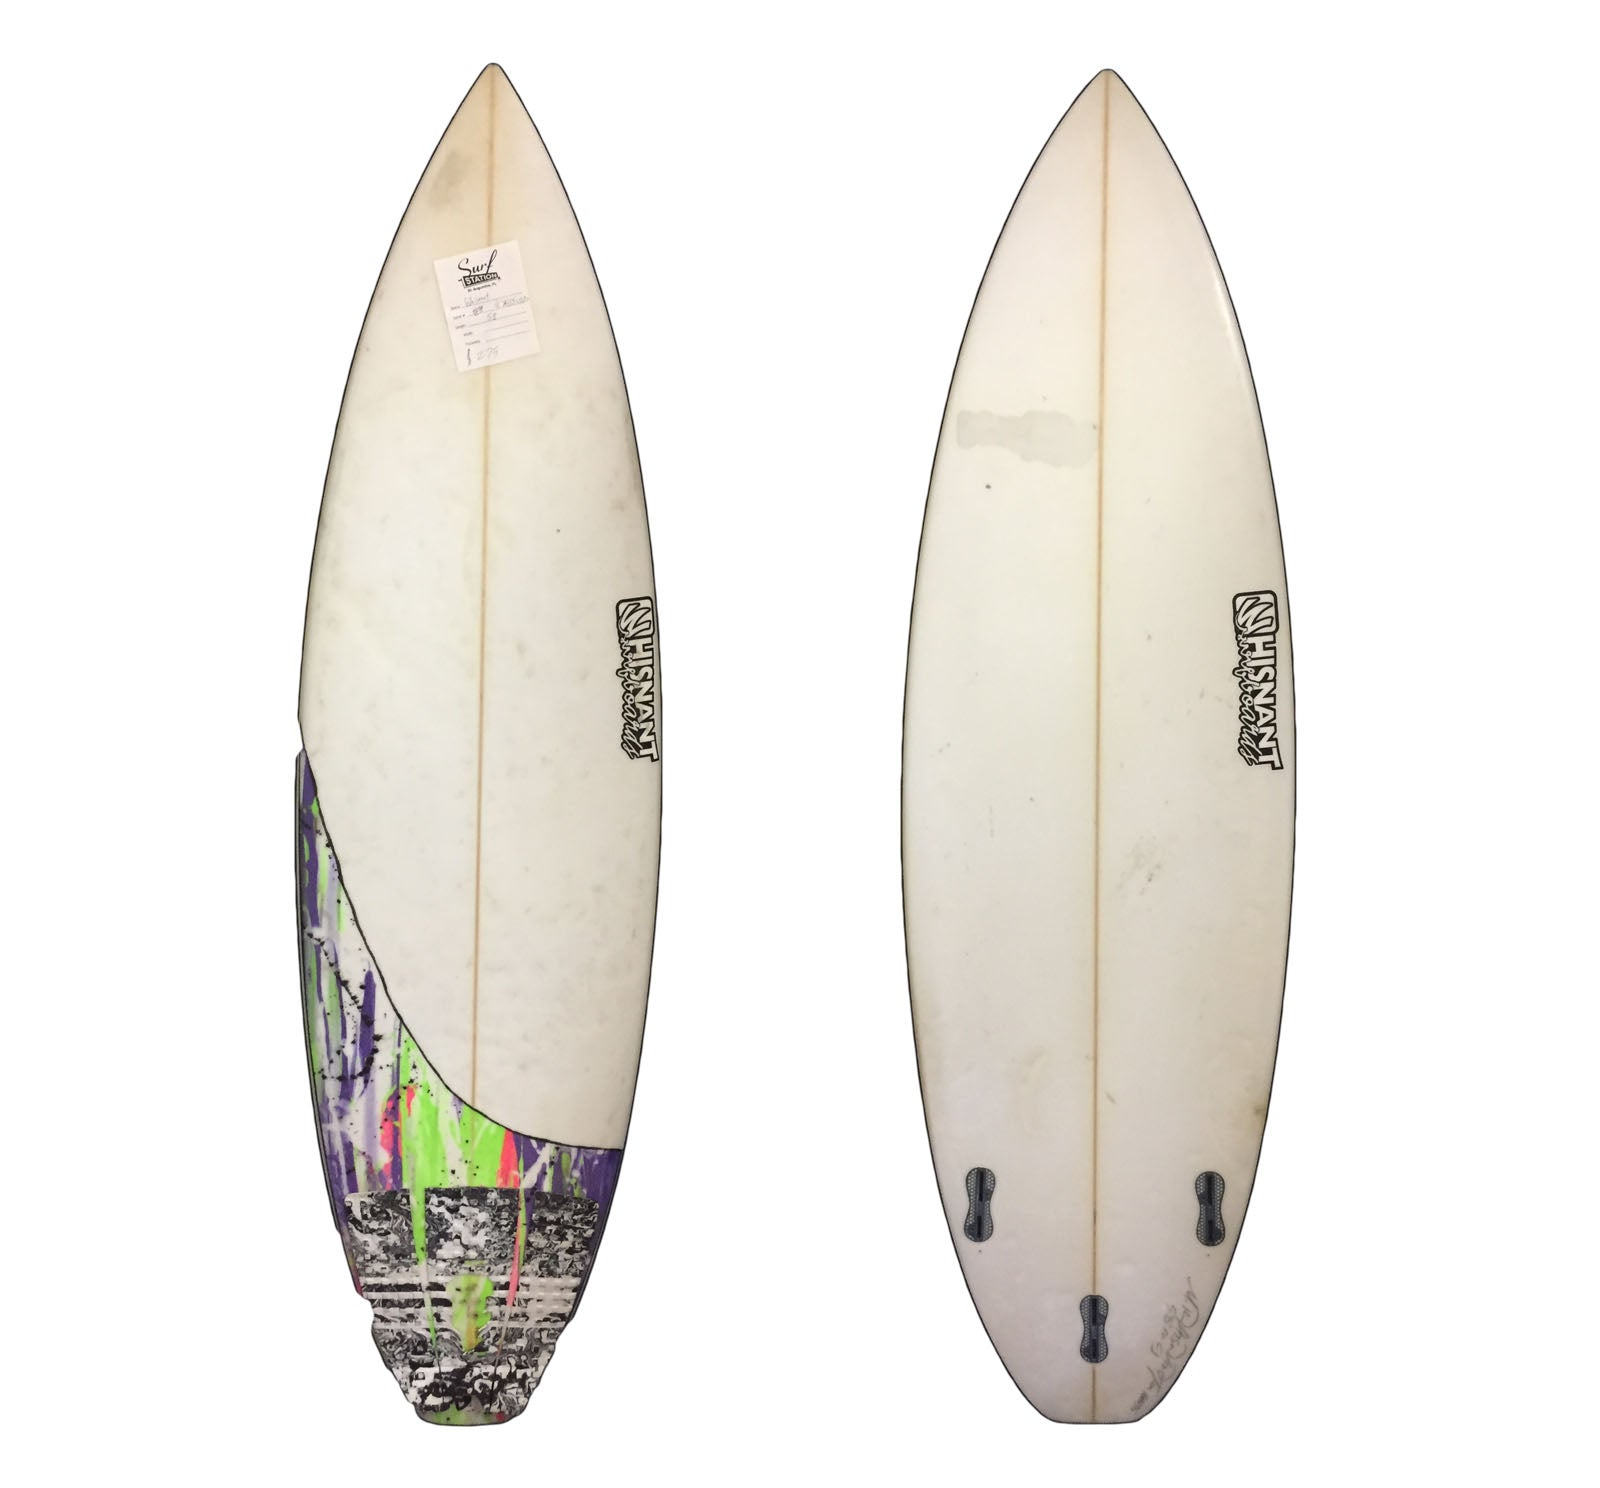 Whisnant Shortboard 5'8 Used Surfboard